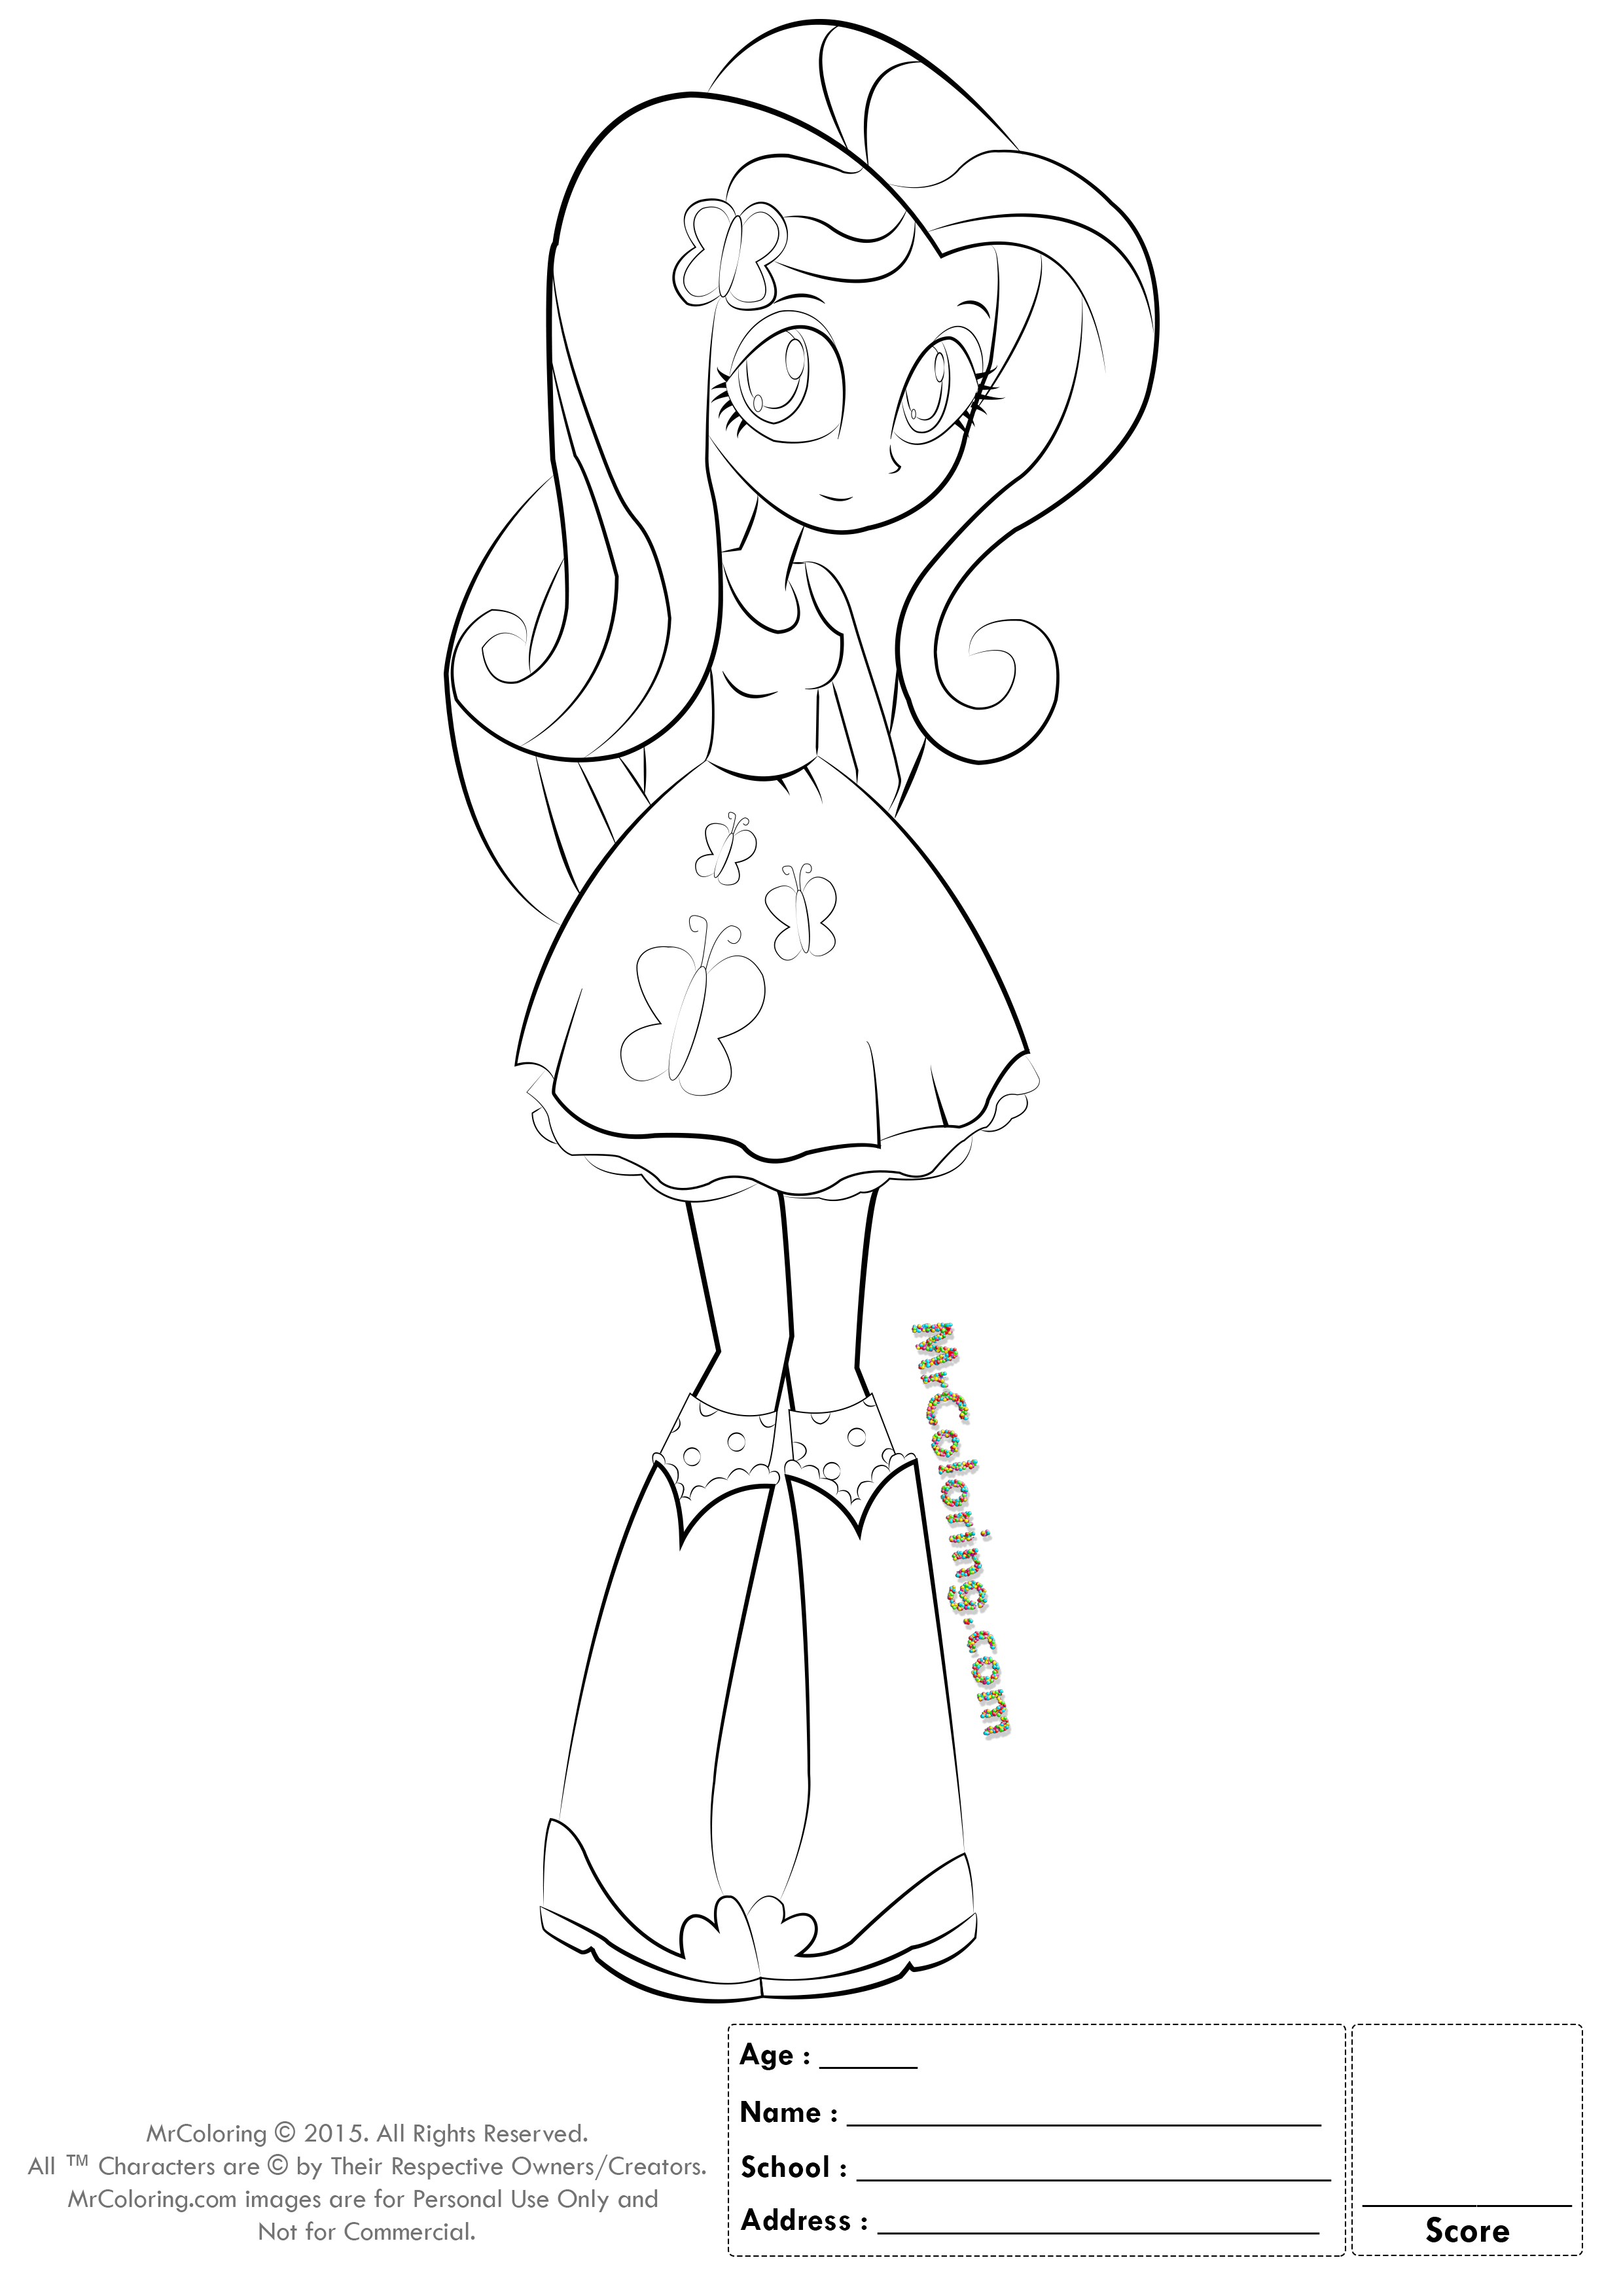 11 Pics Of Equestria Girls Coloring Pages Printable - MLP ...